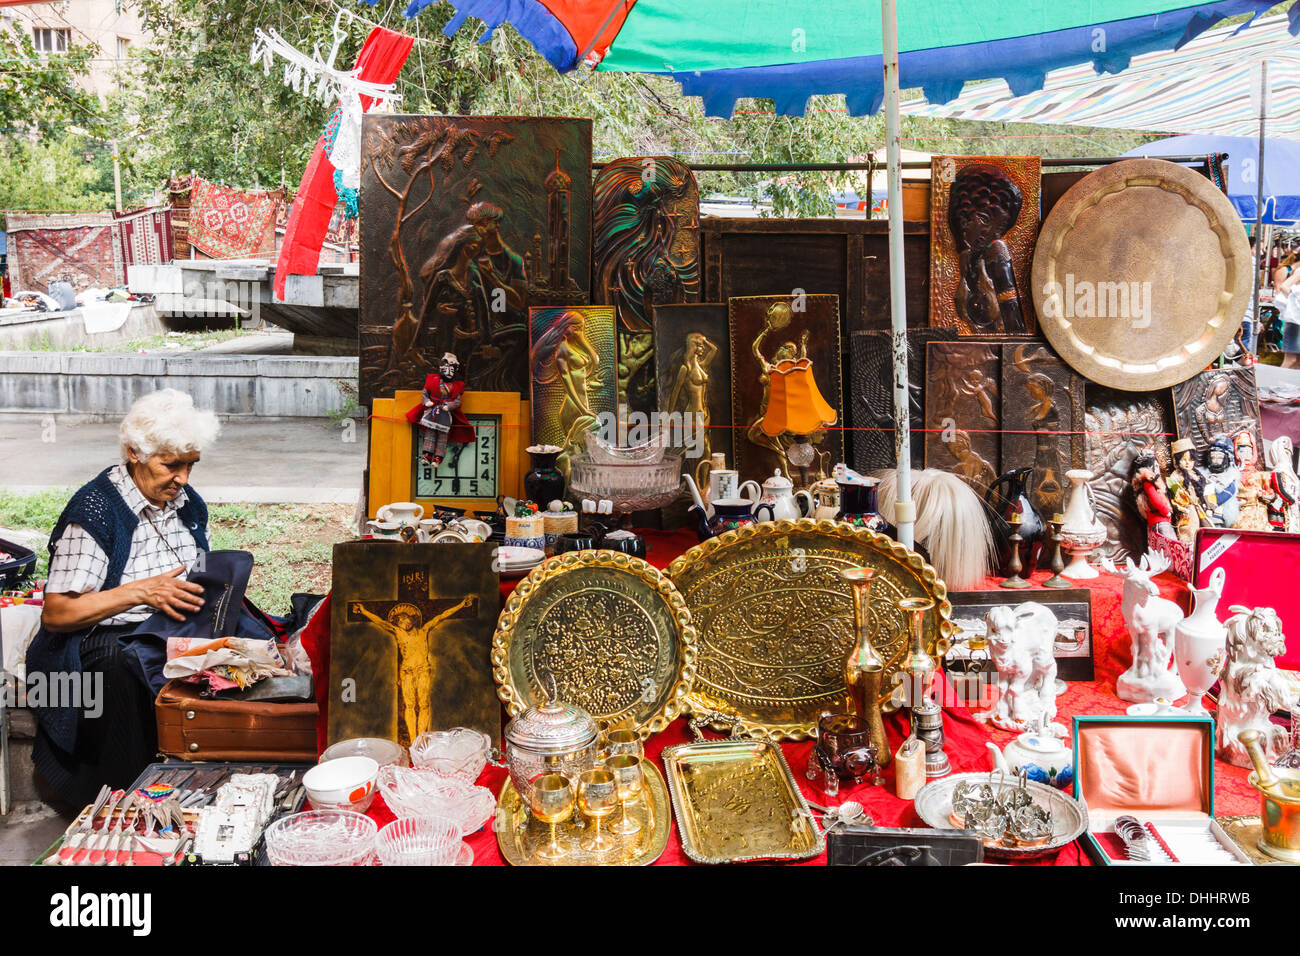 Vernissage market. Yerevan, Armenia - Stock Image